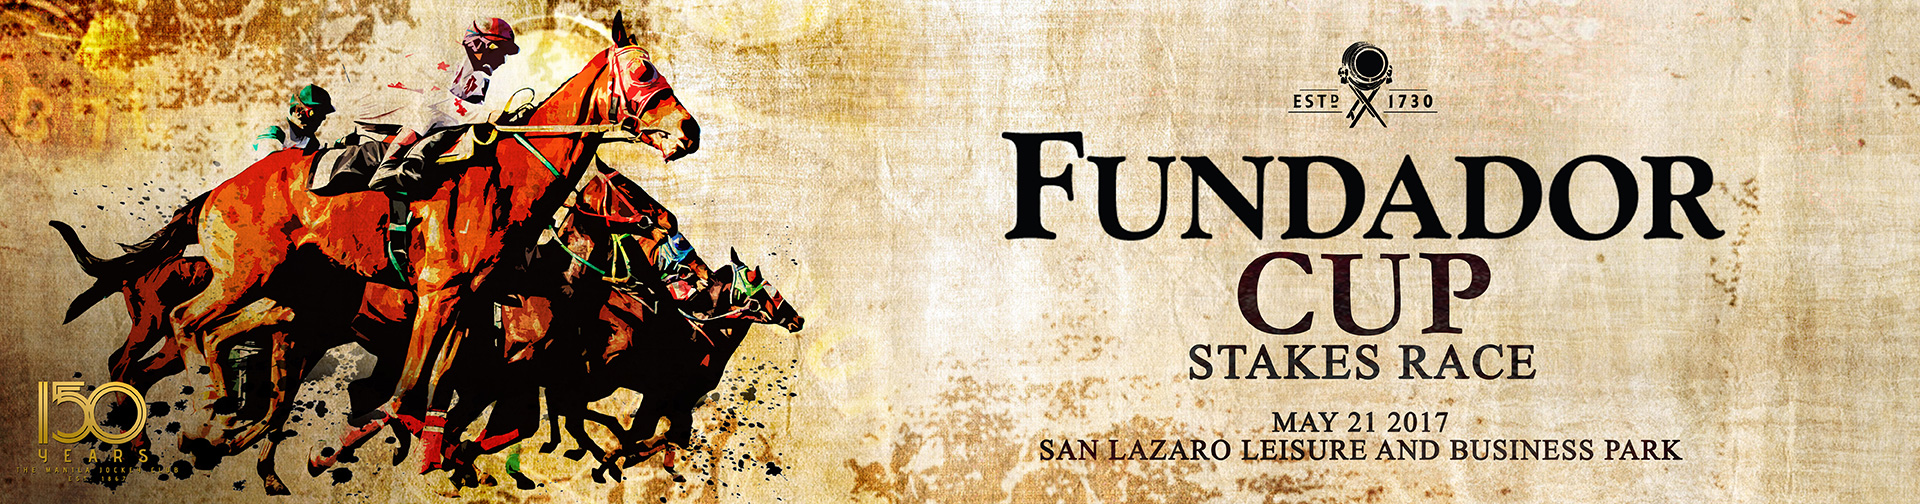 Fundador Cup Stakes Race